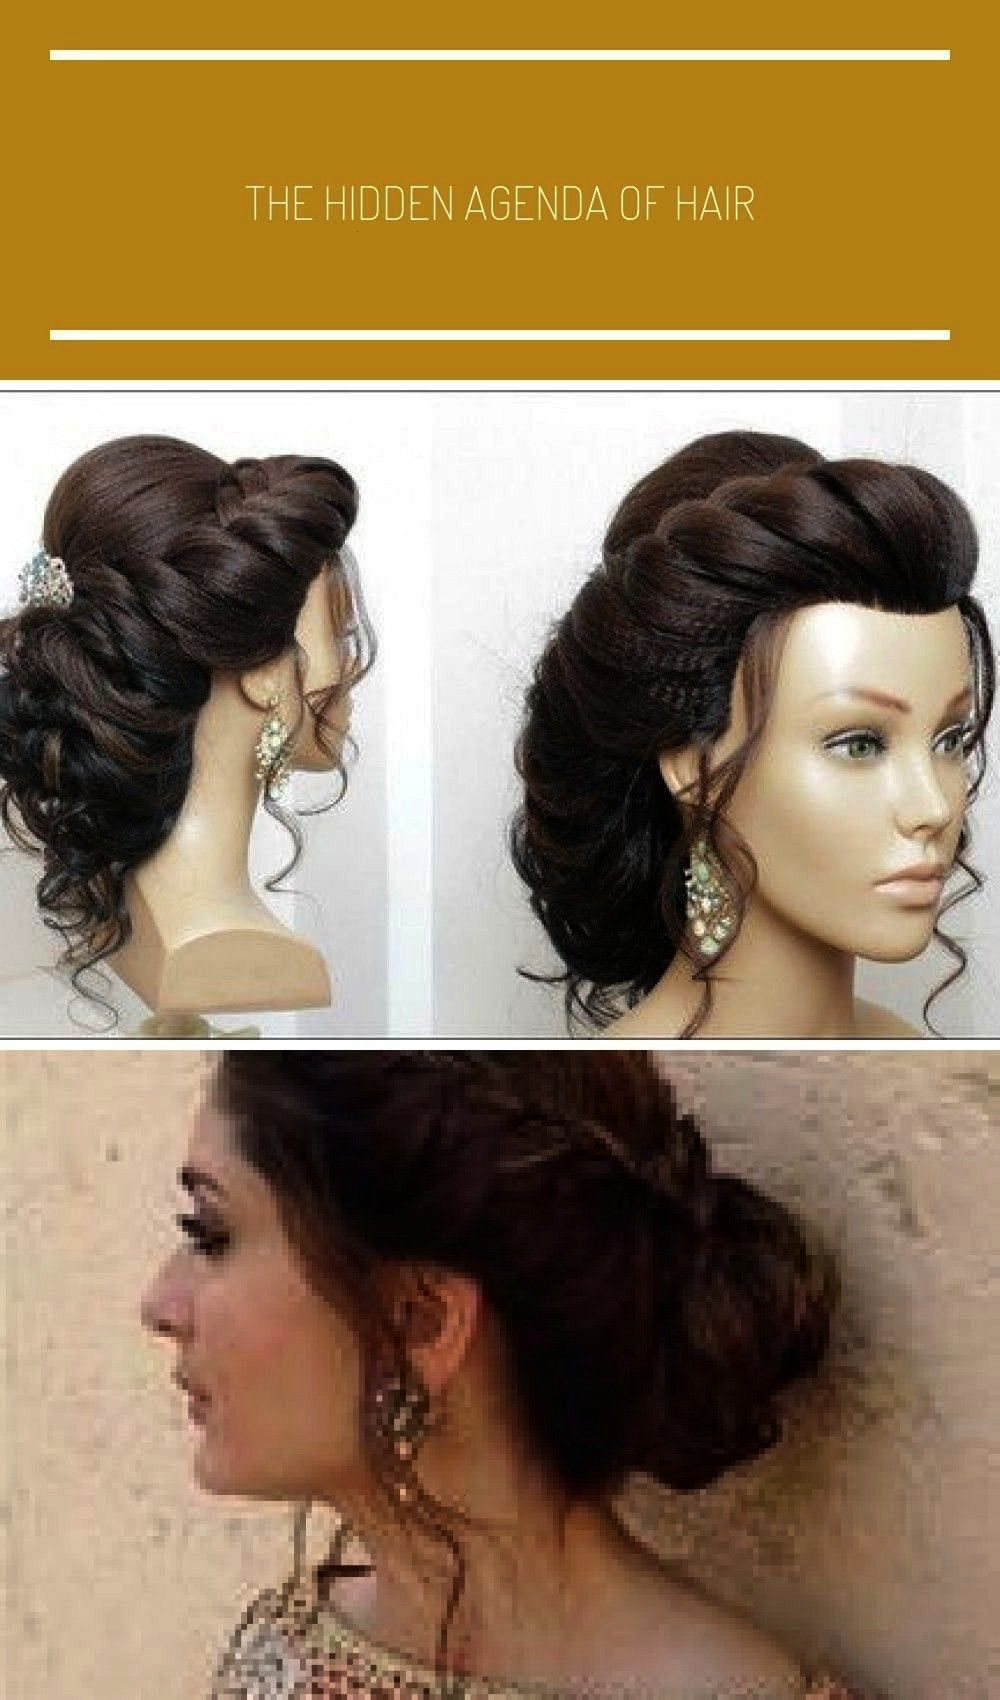 Agenda Of Hairstyle For Wedding Party  Hairstyle For Wedding Party hairstyles indian saree wedding hairsThe Hidden Agenda Of Hairstyle For Wedding Party  Hairstyle For We...